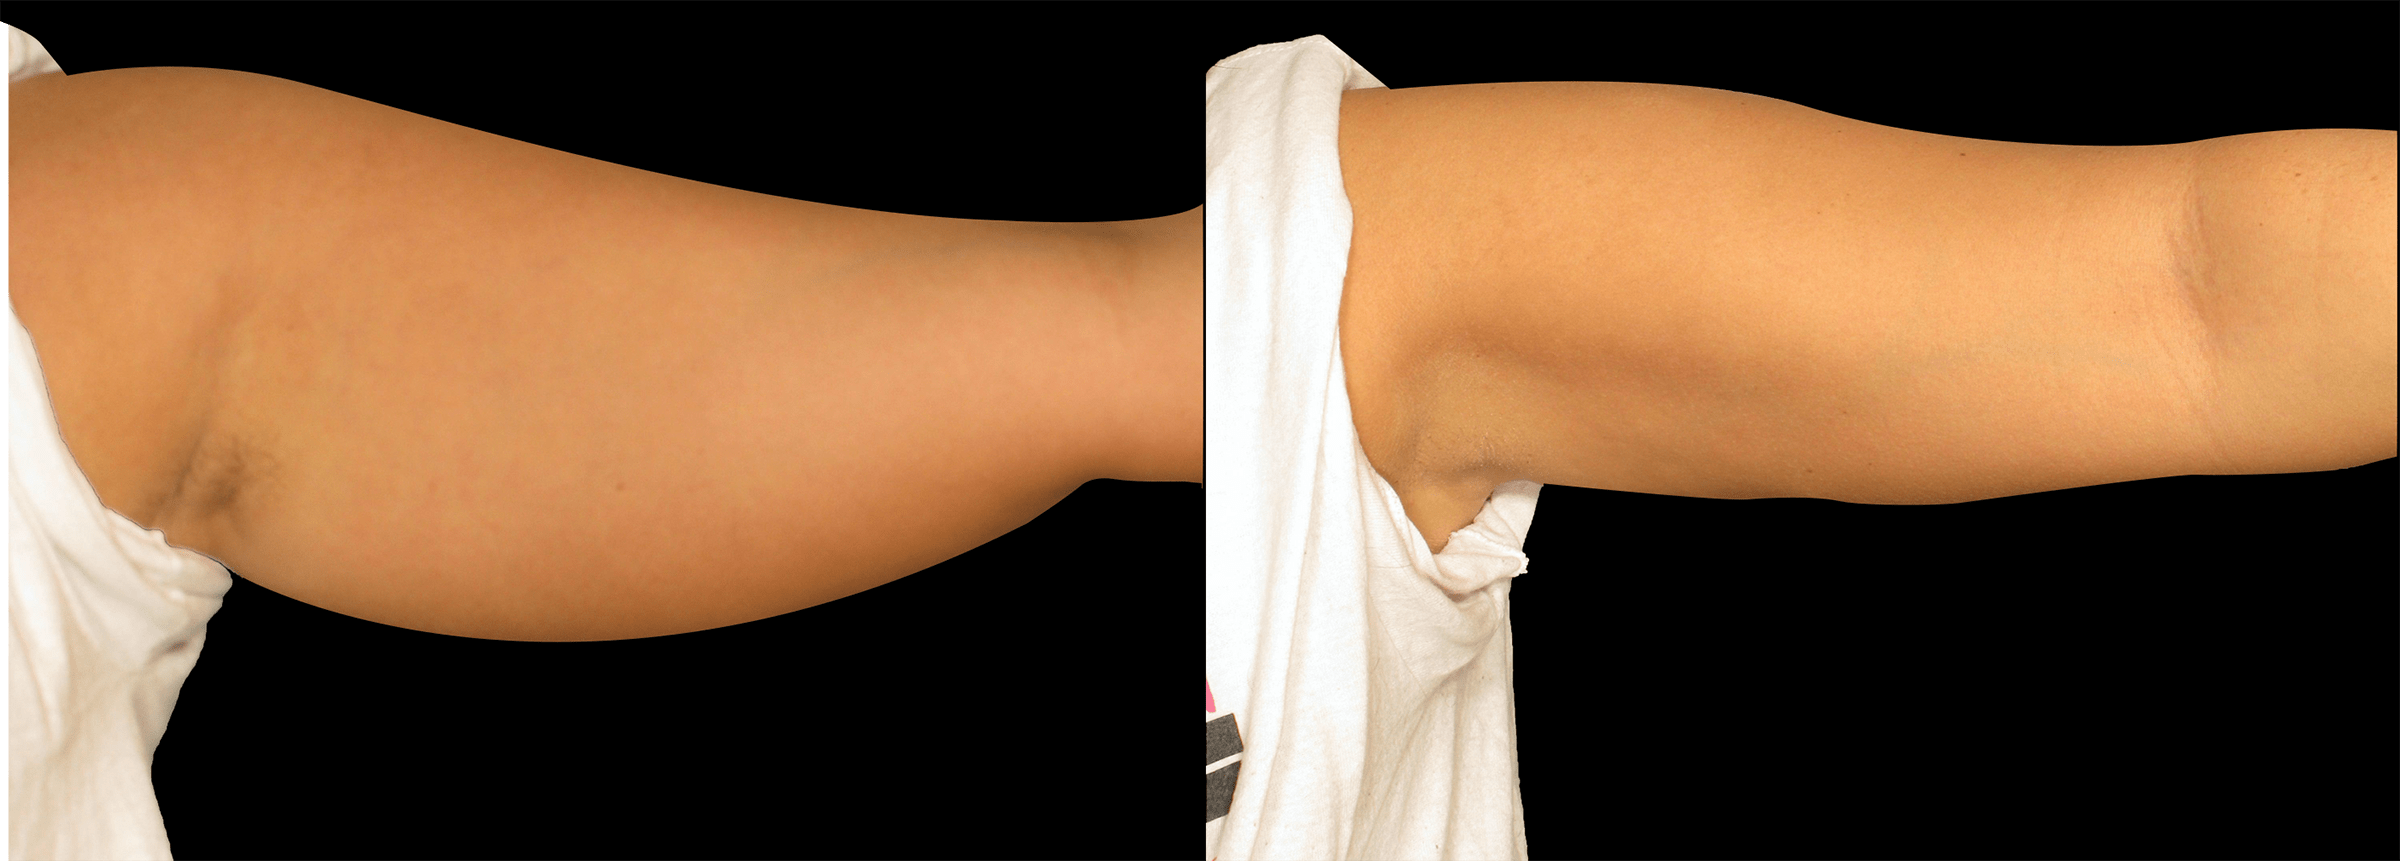 Long Island PERFECT BODY LASER CAVI-LIPO ARM REDUCTION